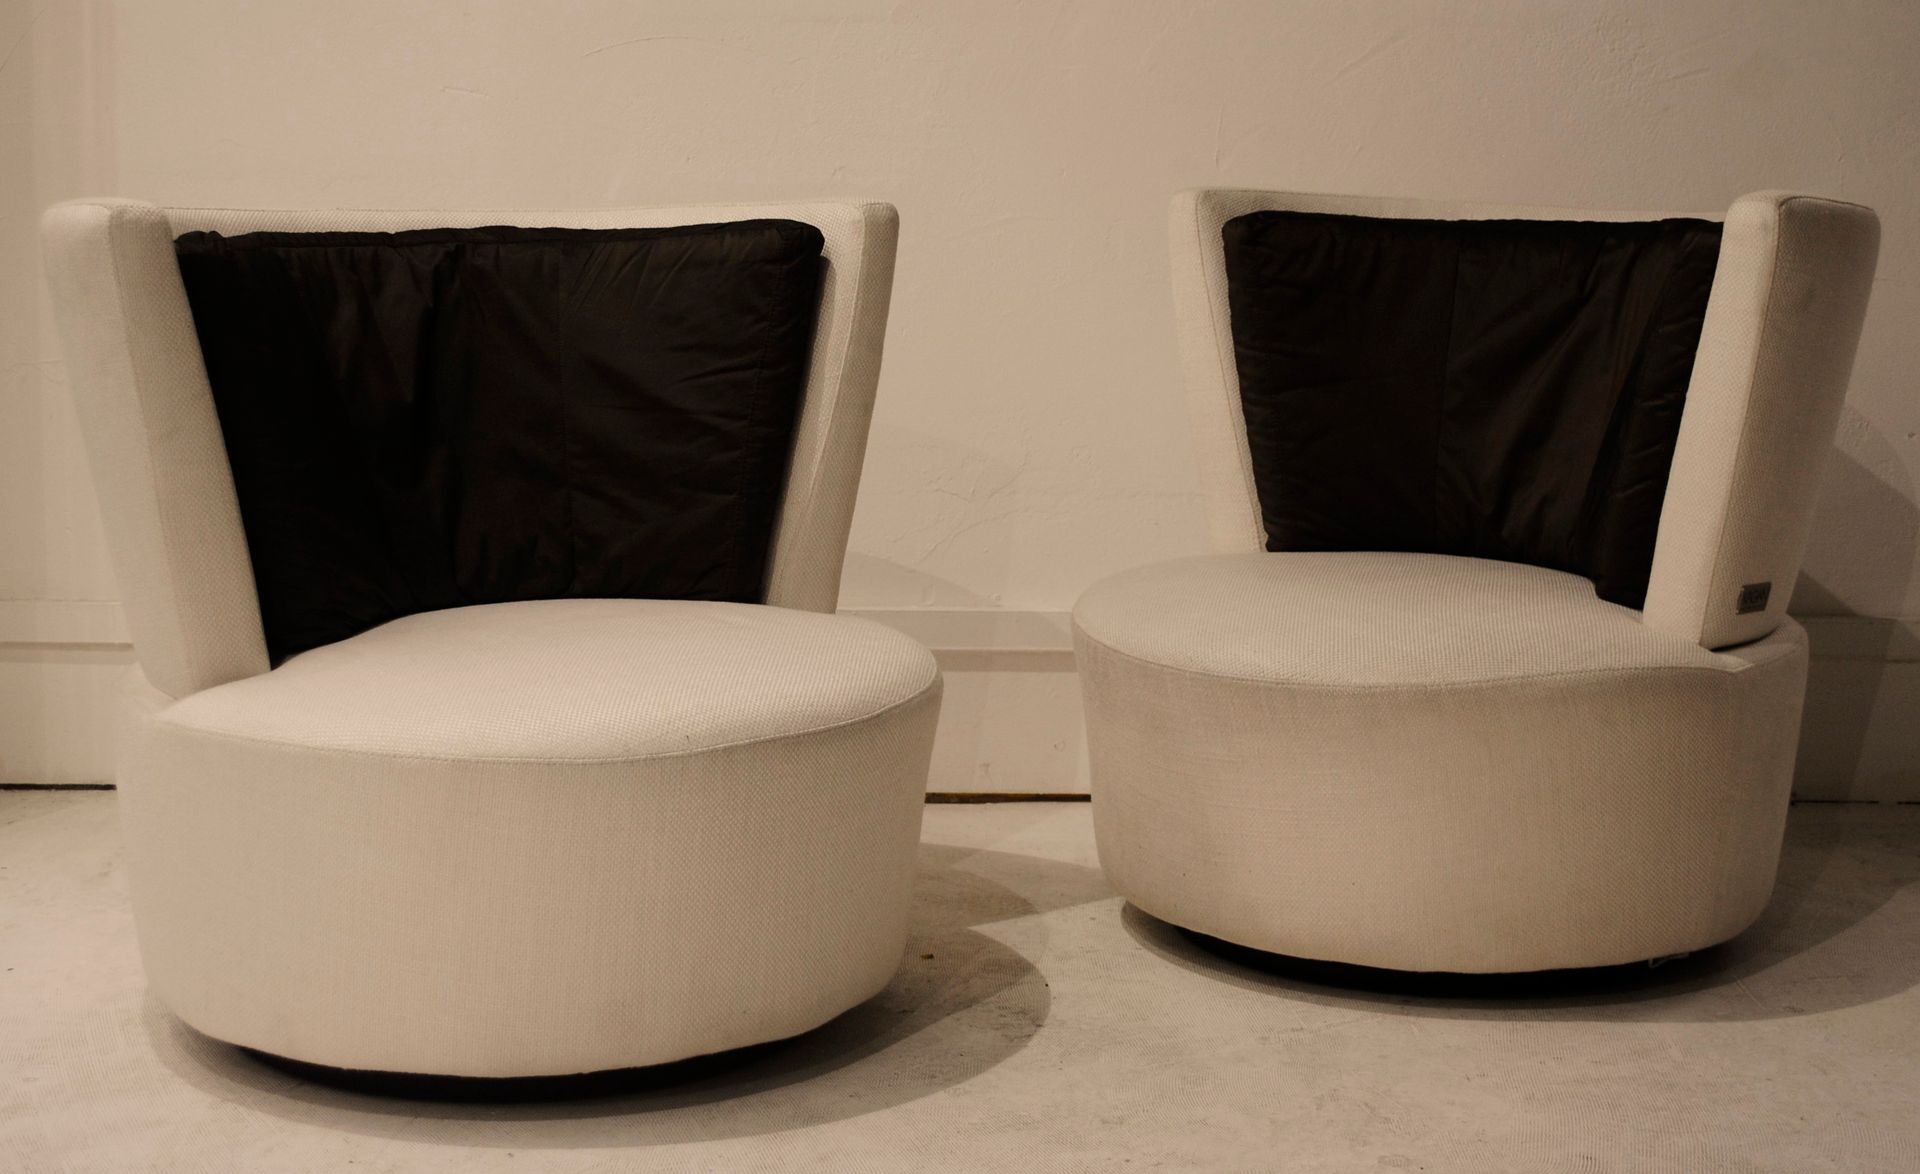 Ivory And Brown Swivel Chairs By Vladimir Kagan, Set Of 2